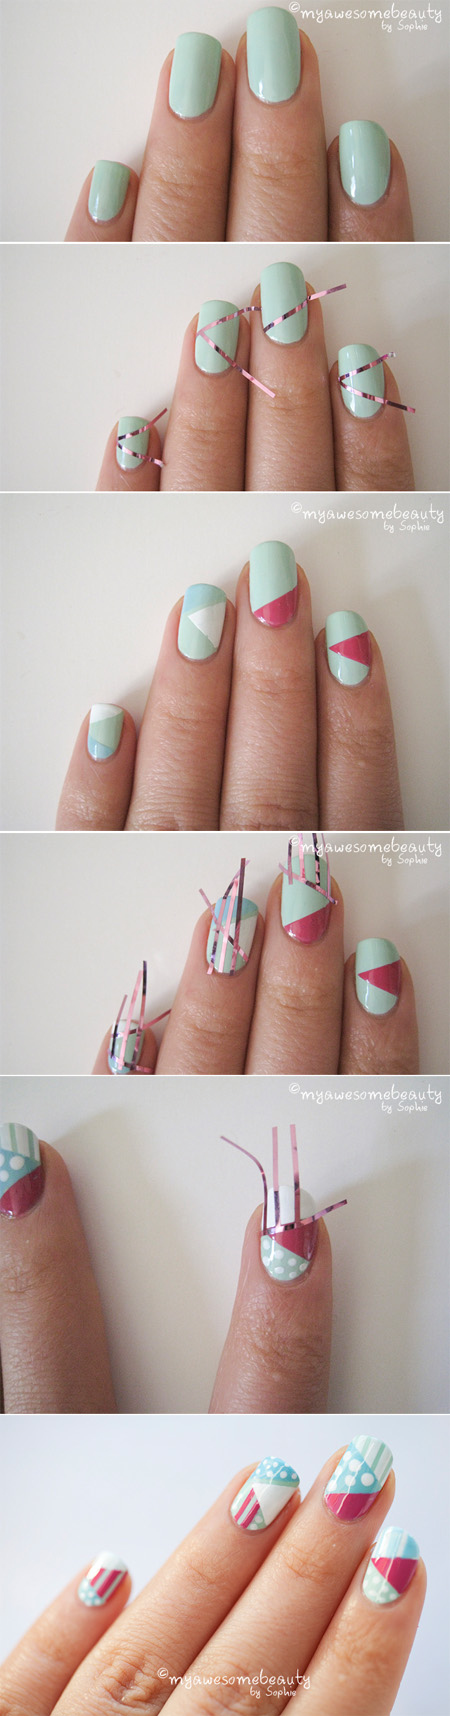 15 easy and creative nail ideas pretty designs graphic nail art prinsesfo Choice Image